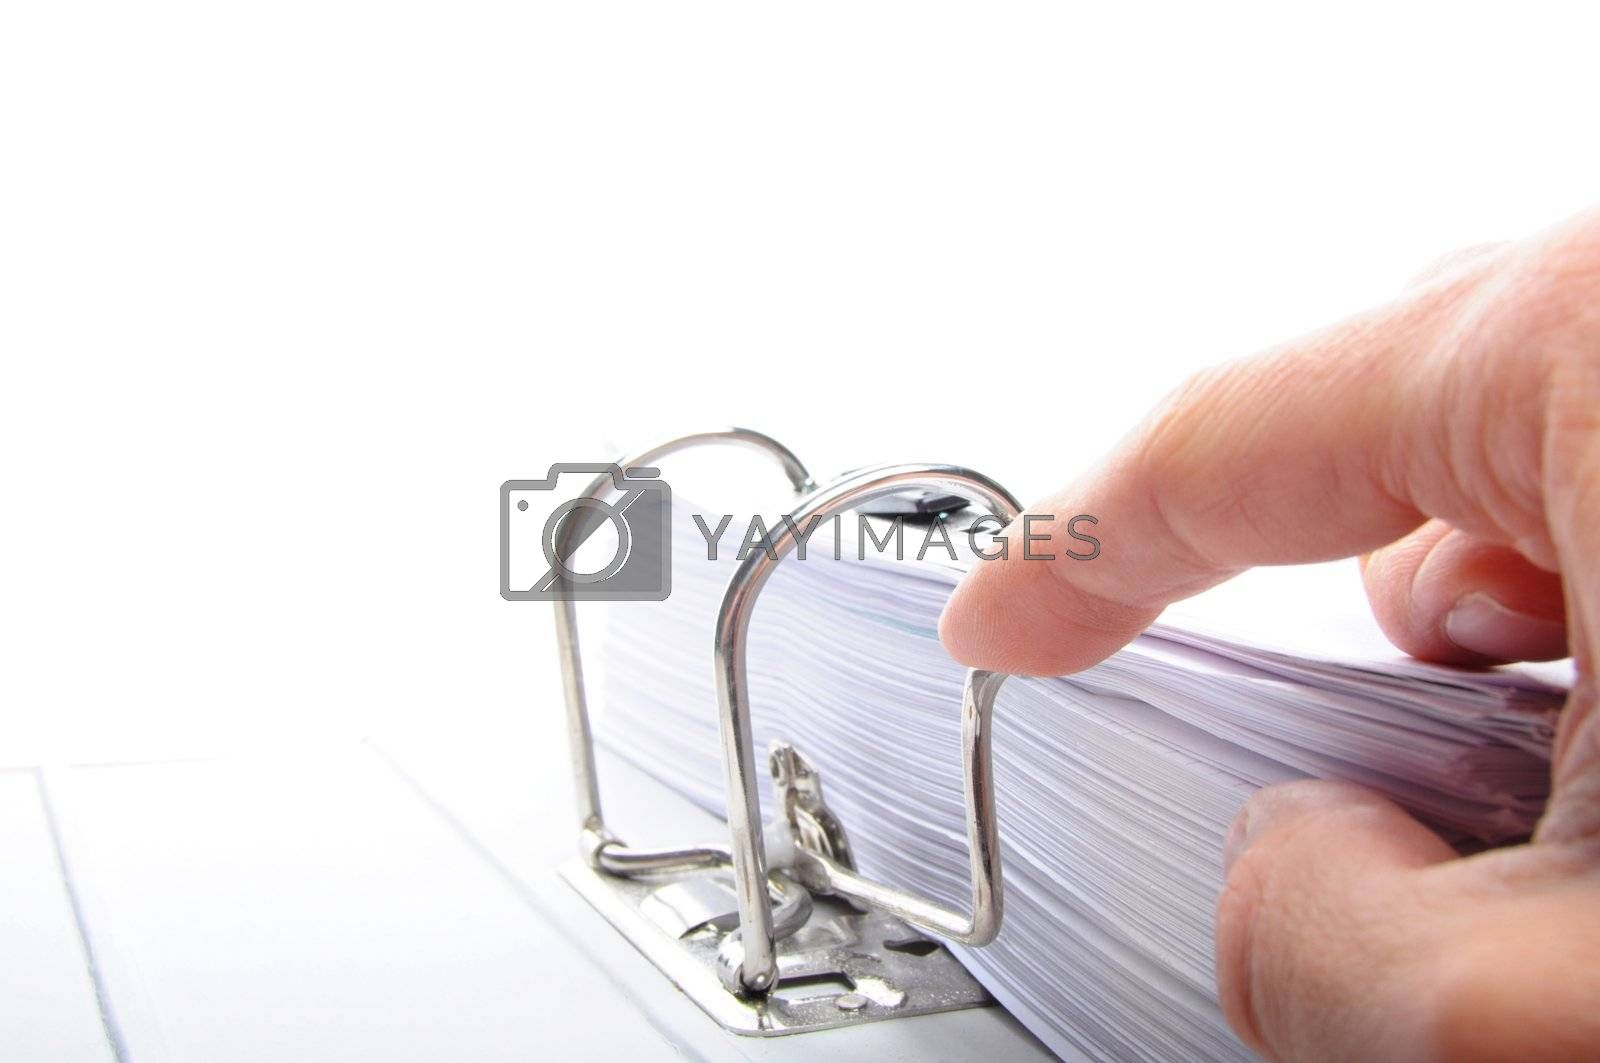 hand and folder or file showing office or work concept with copyspace